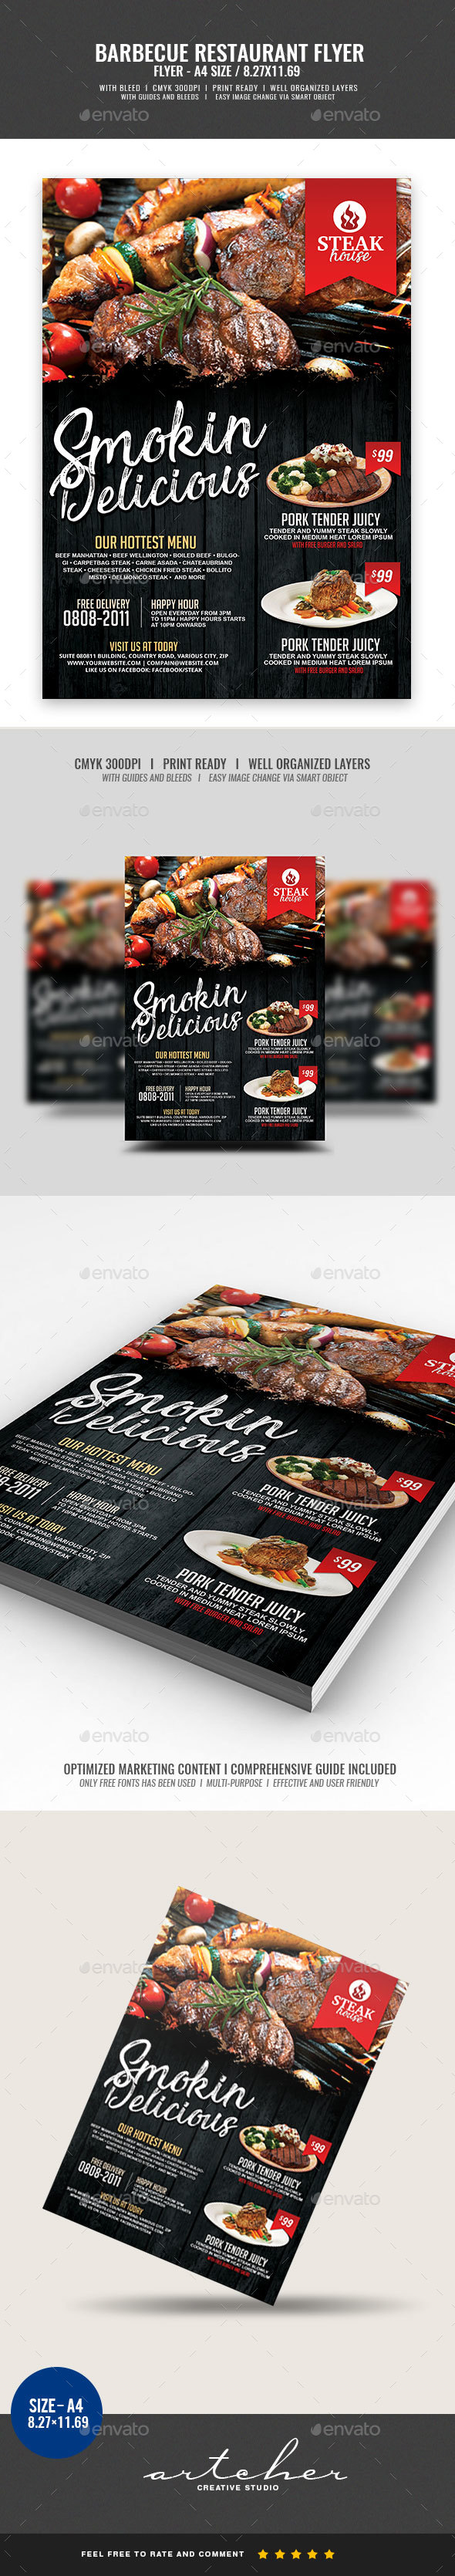 Barbecue Steakhouse Restaurant Flyer